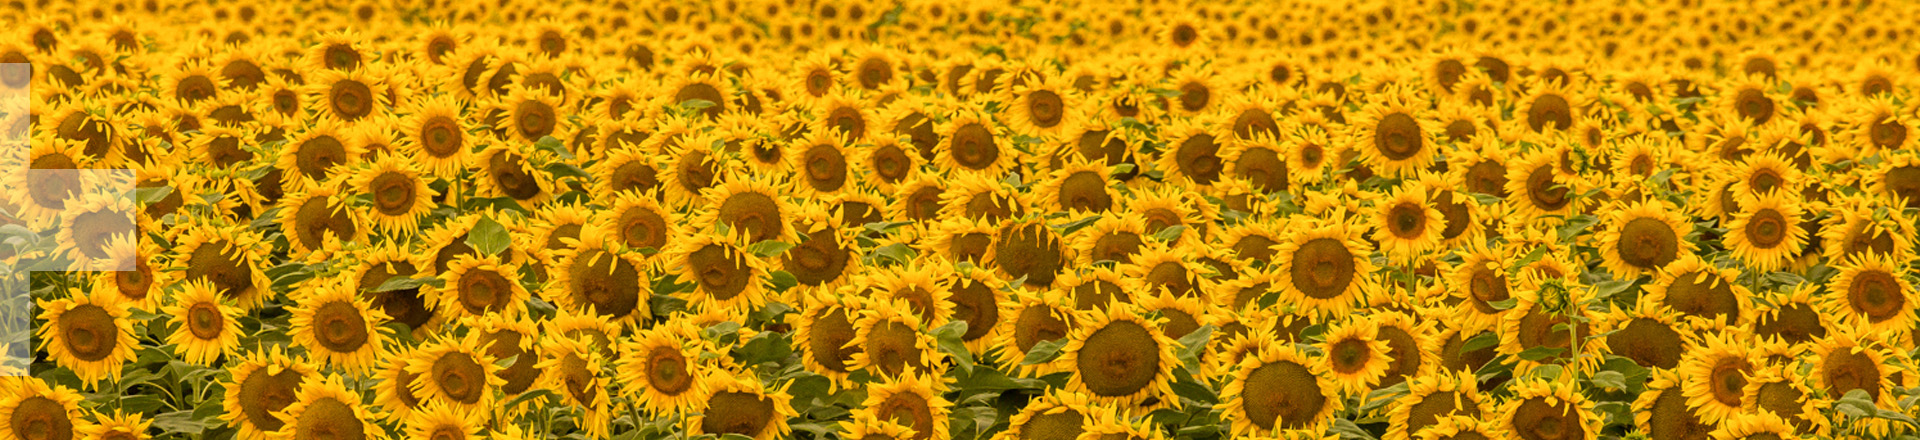 Ameropa Fertilizers Food Feed Danube Agriculture Sustainability Sunflowers